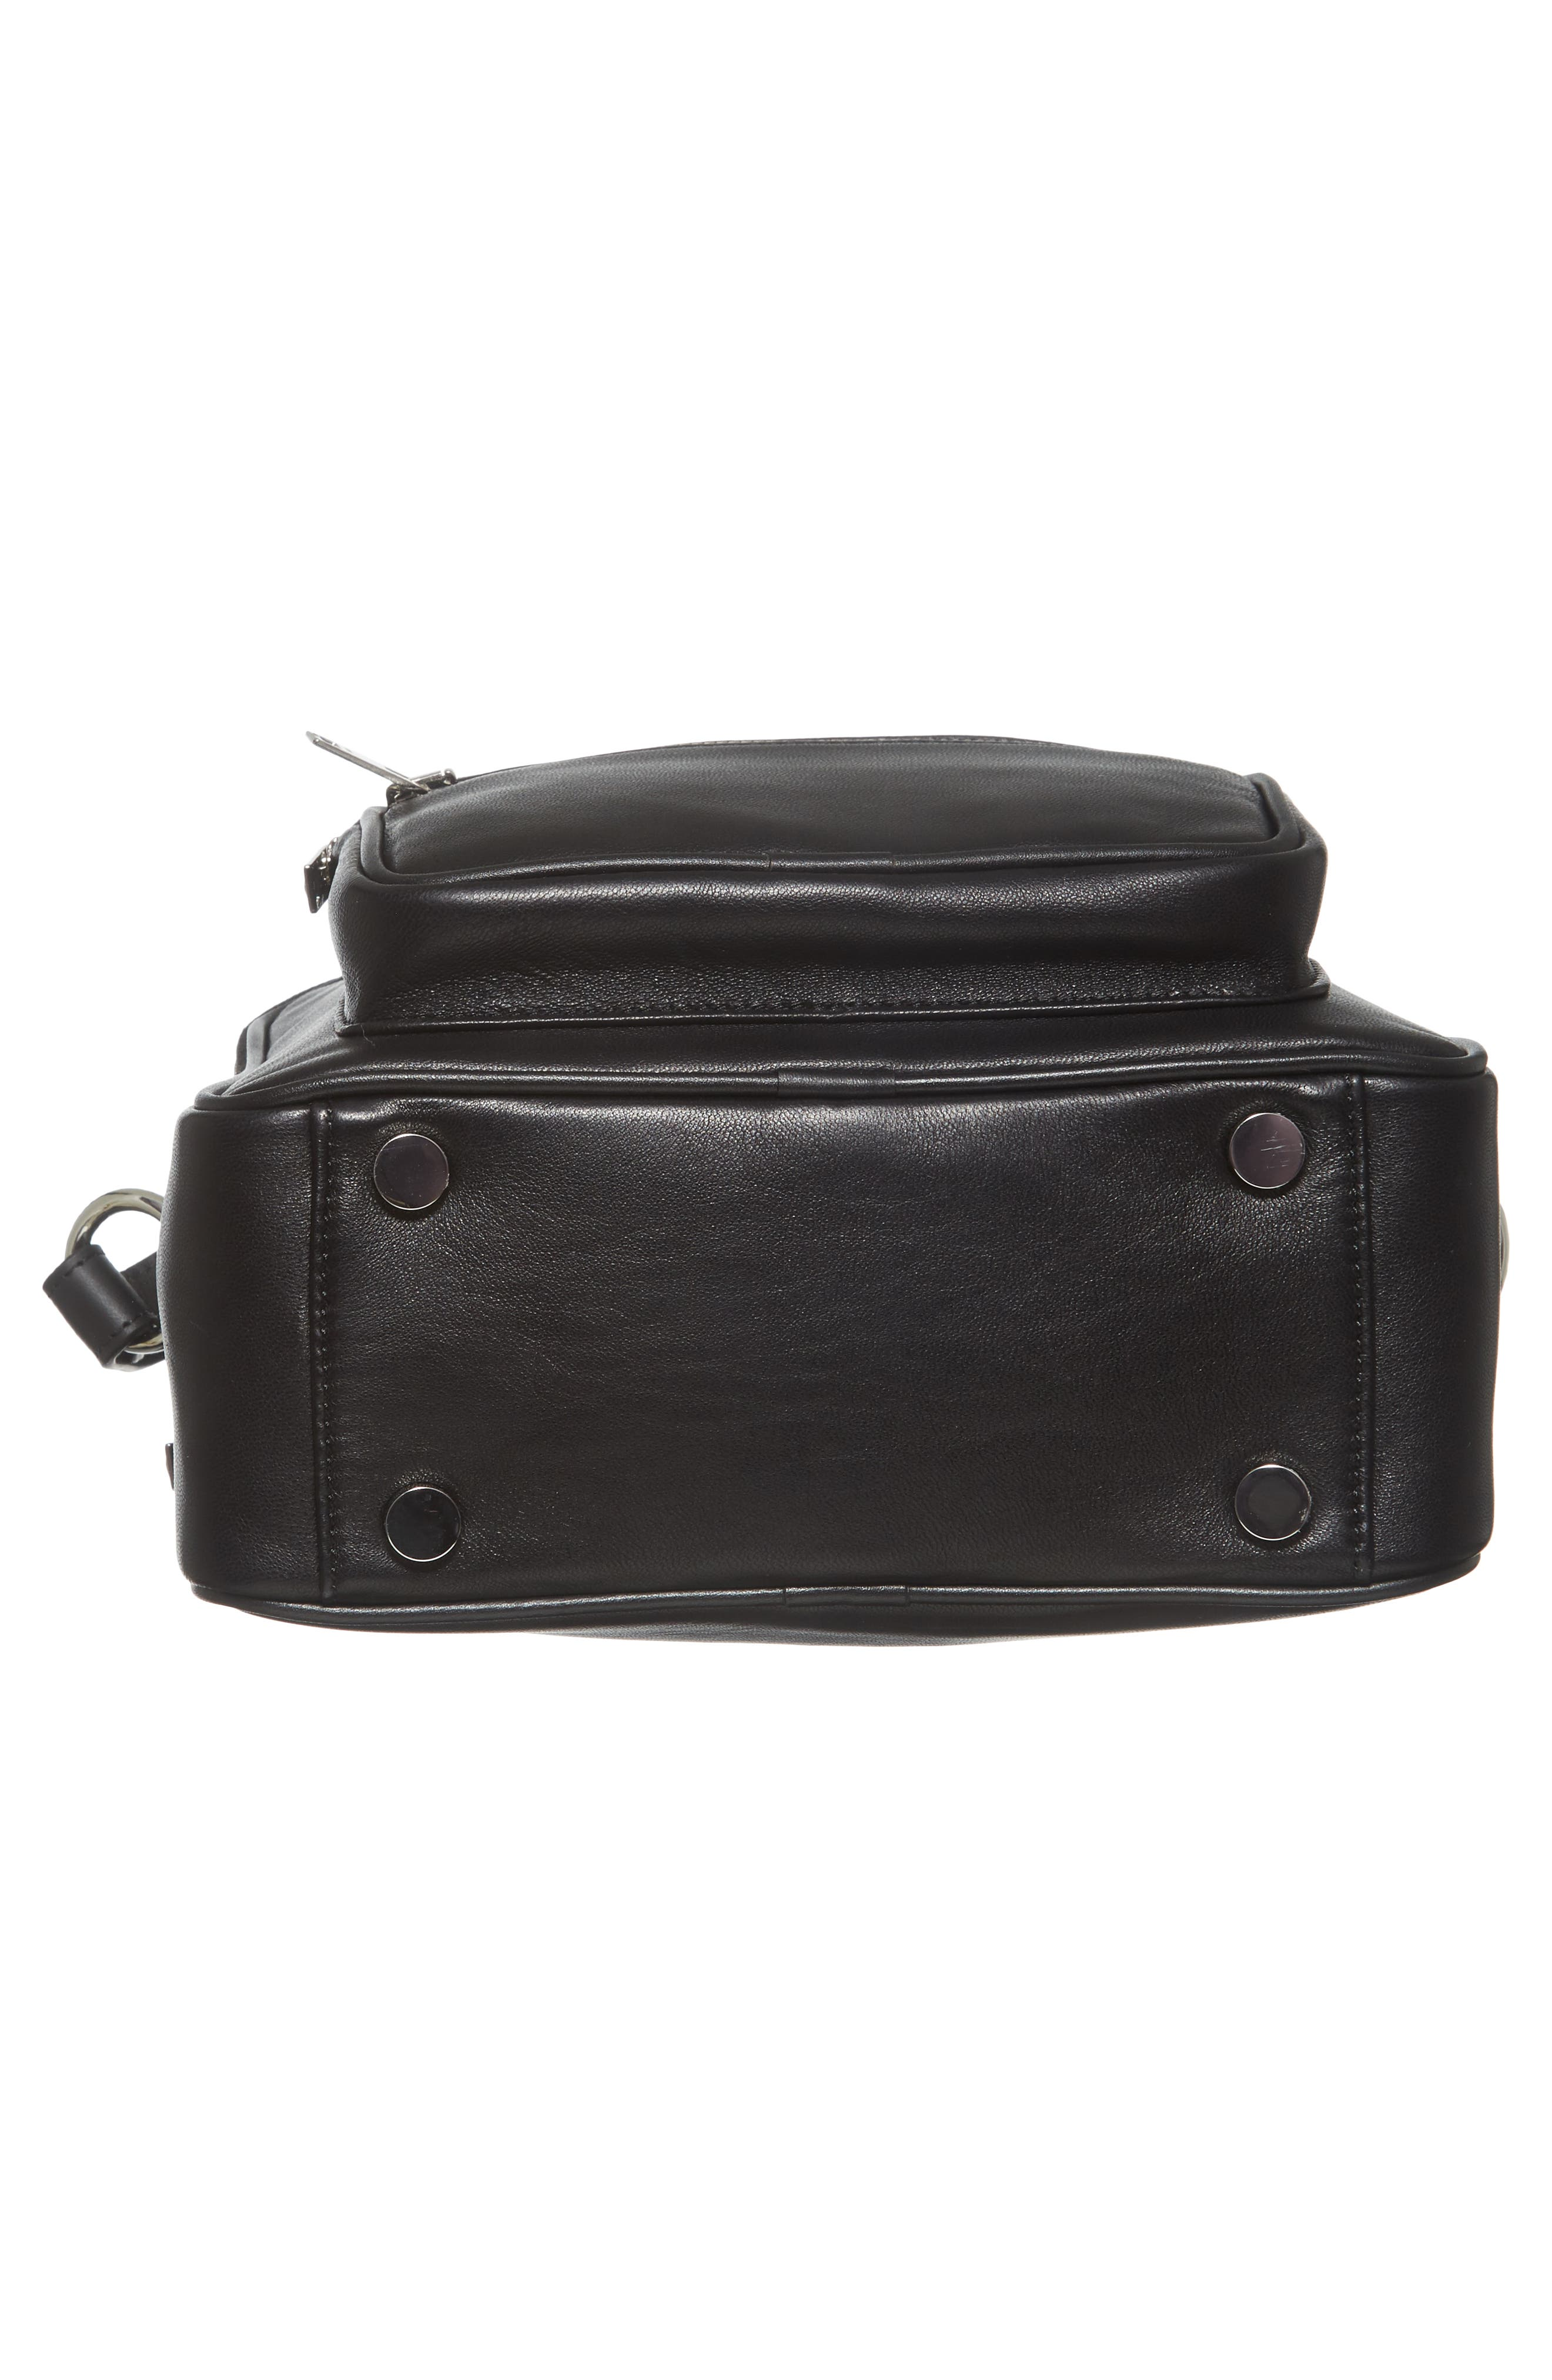 Washed Leather Crossbody Bag,                             Alternate thumbnail 6, color,                             BLACK